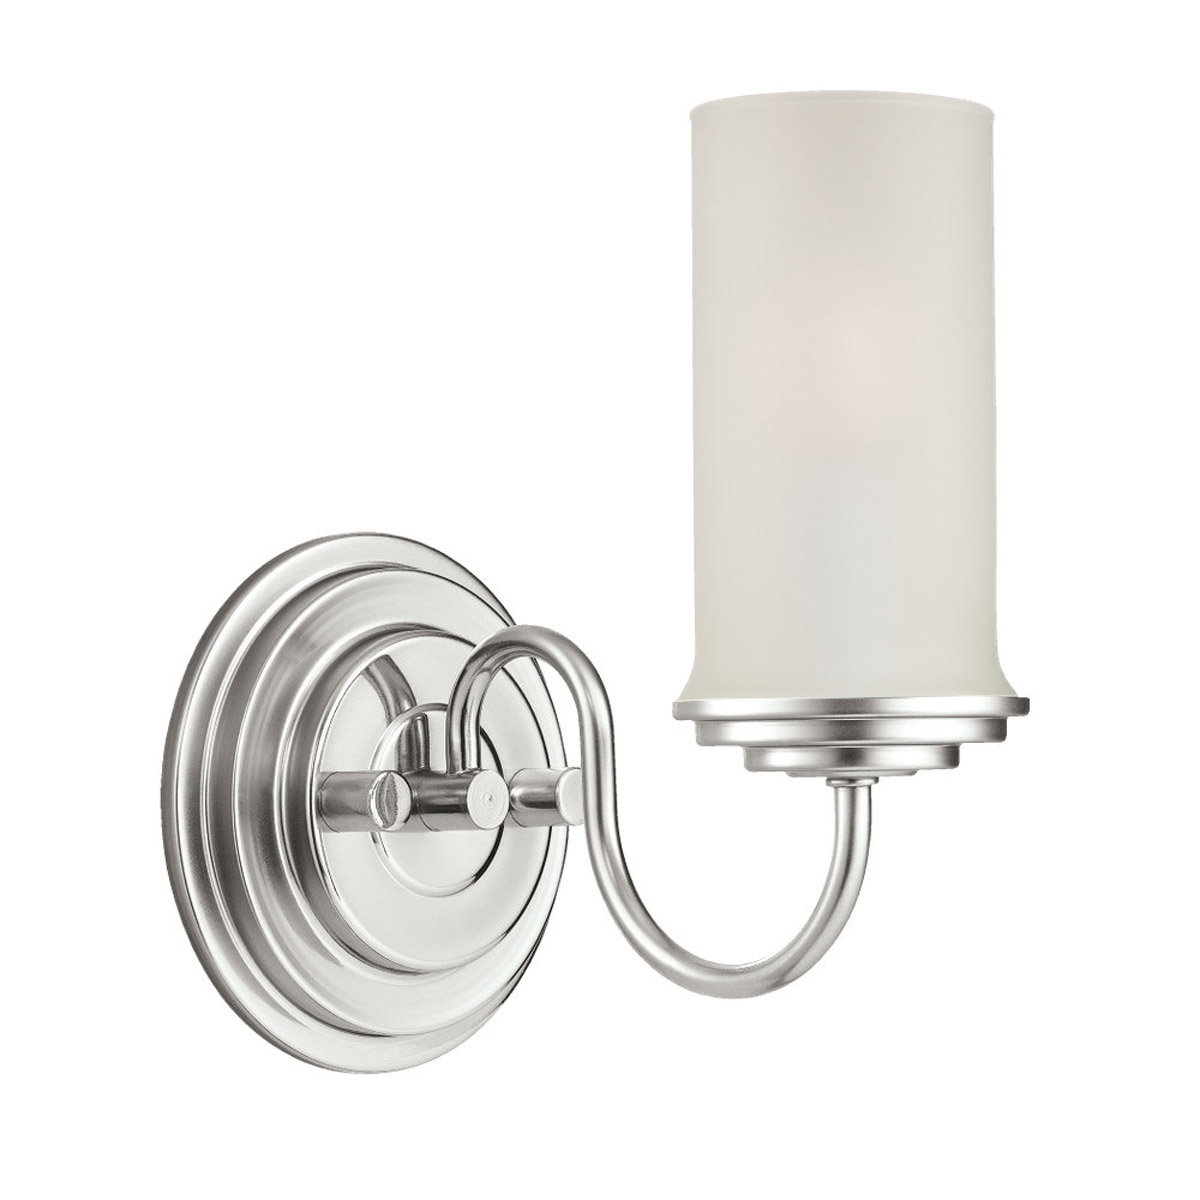 Sea Gull Lighting Wellington 1 Light Wall / Bath / Vanity in Polished Nickel 44655-841 photo